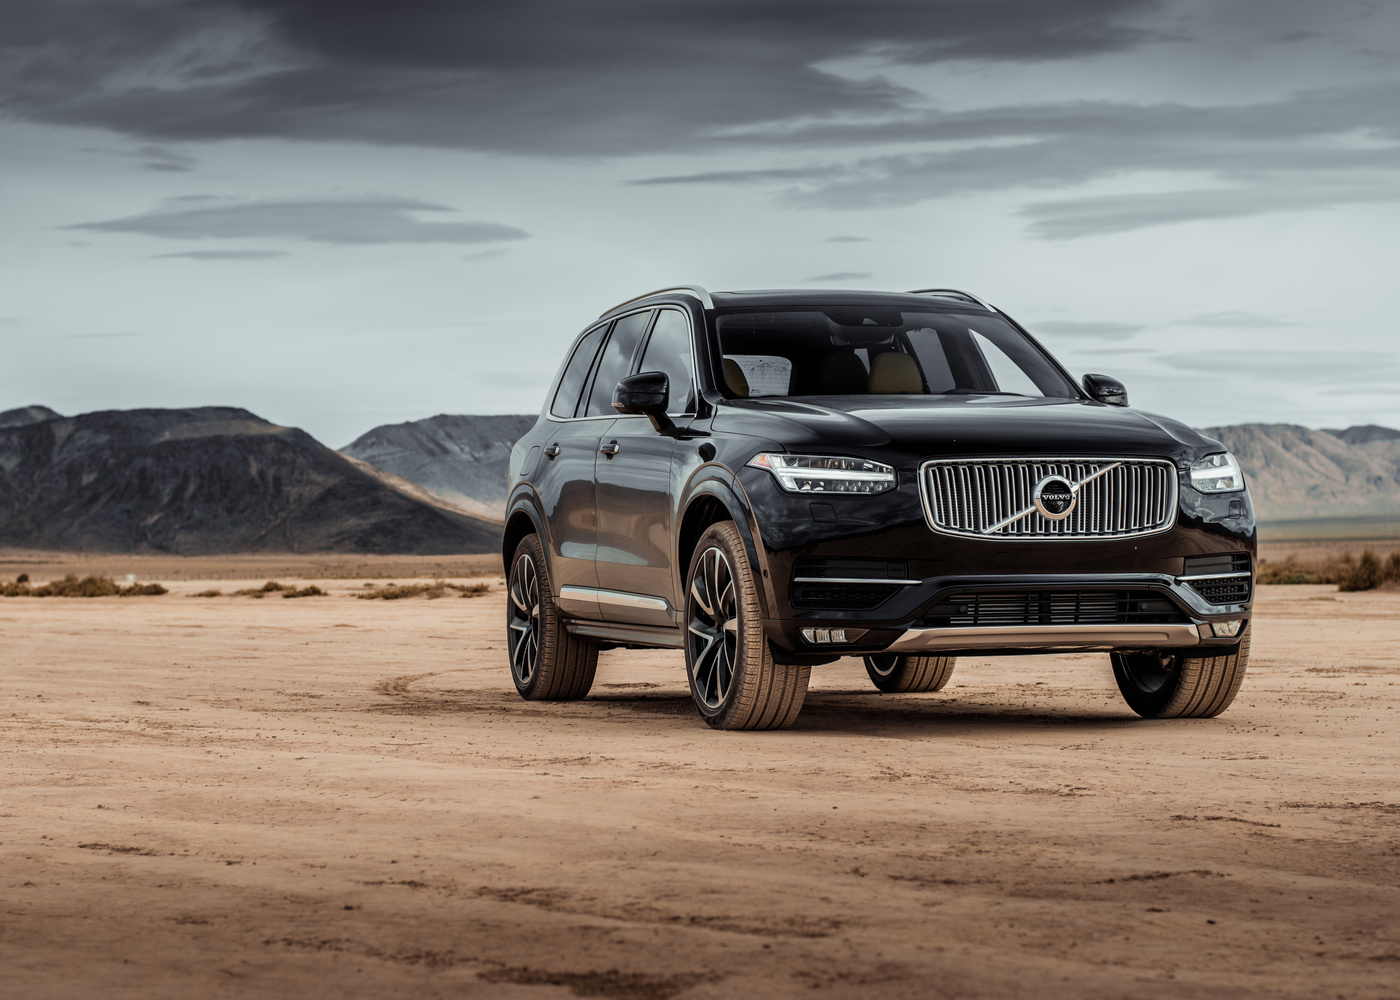 Volvo XC90 by Travis Pinney